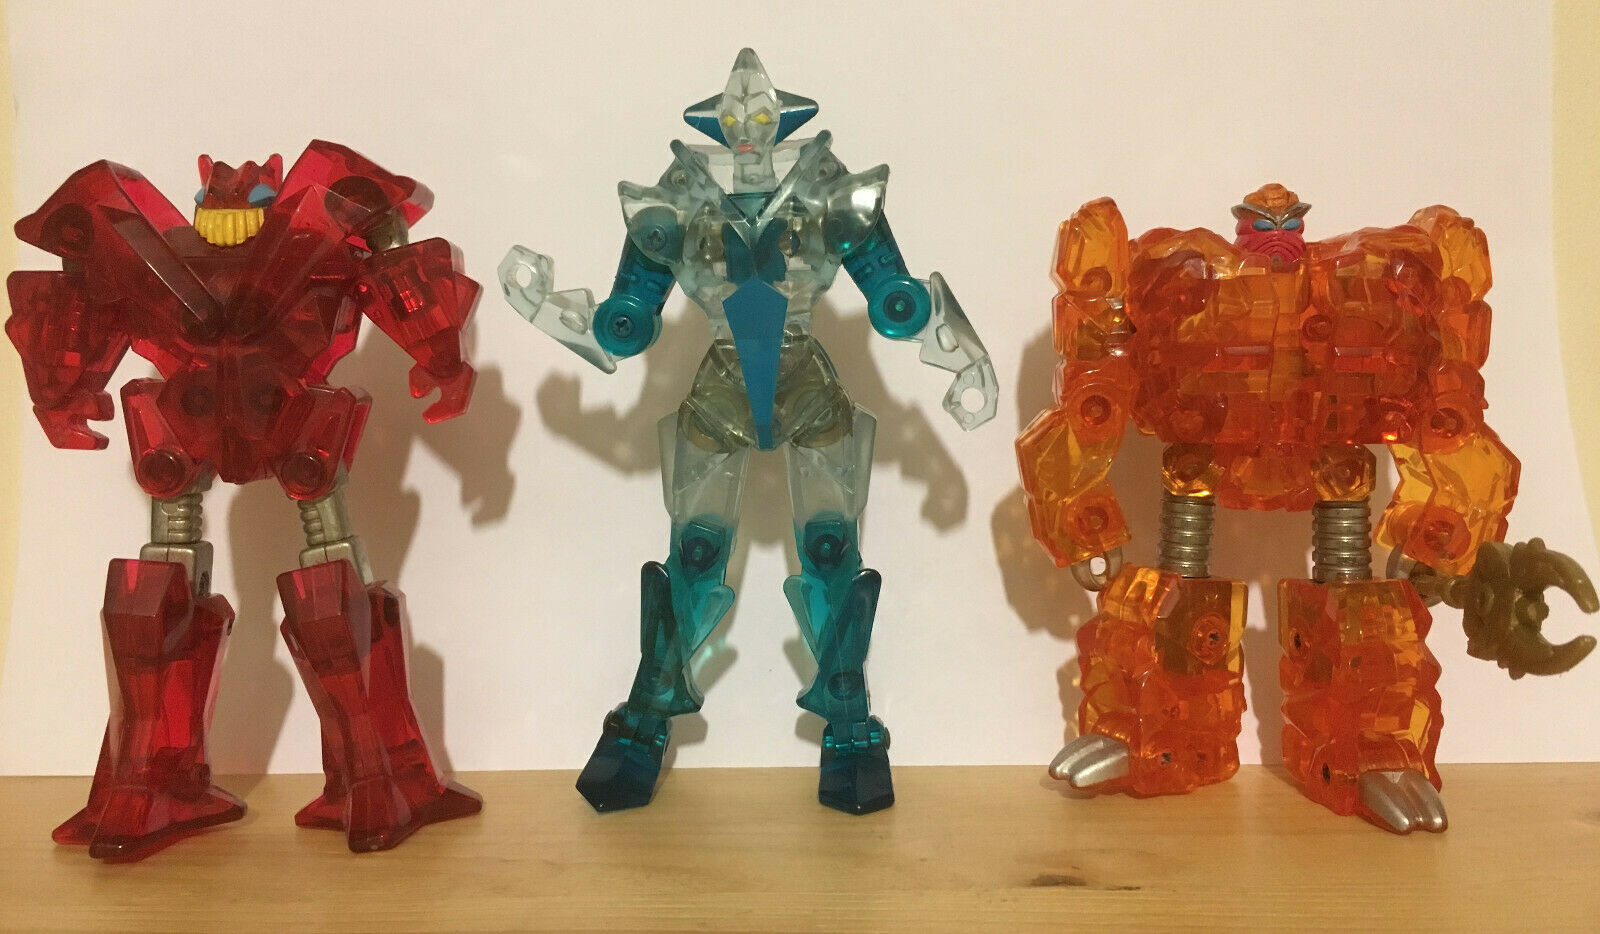 Vintage Rock Lords All 3 Jewel Lords Sunstone Flamestone & Solitare Released